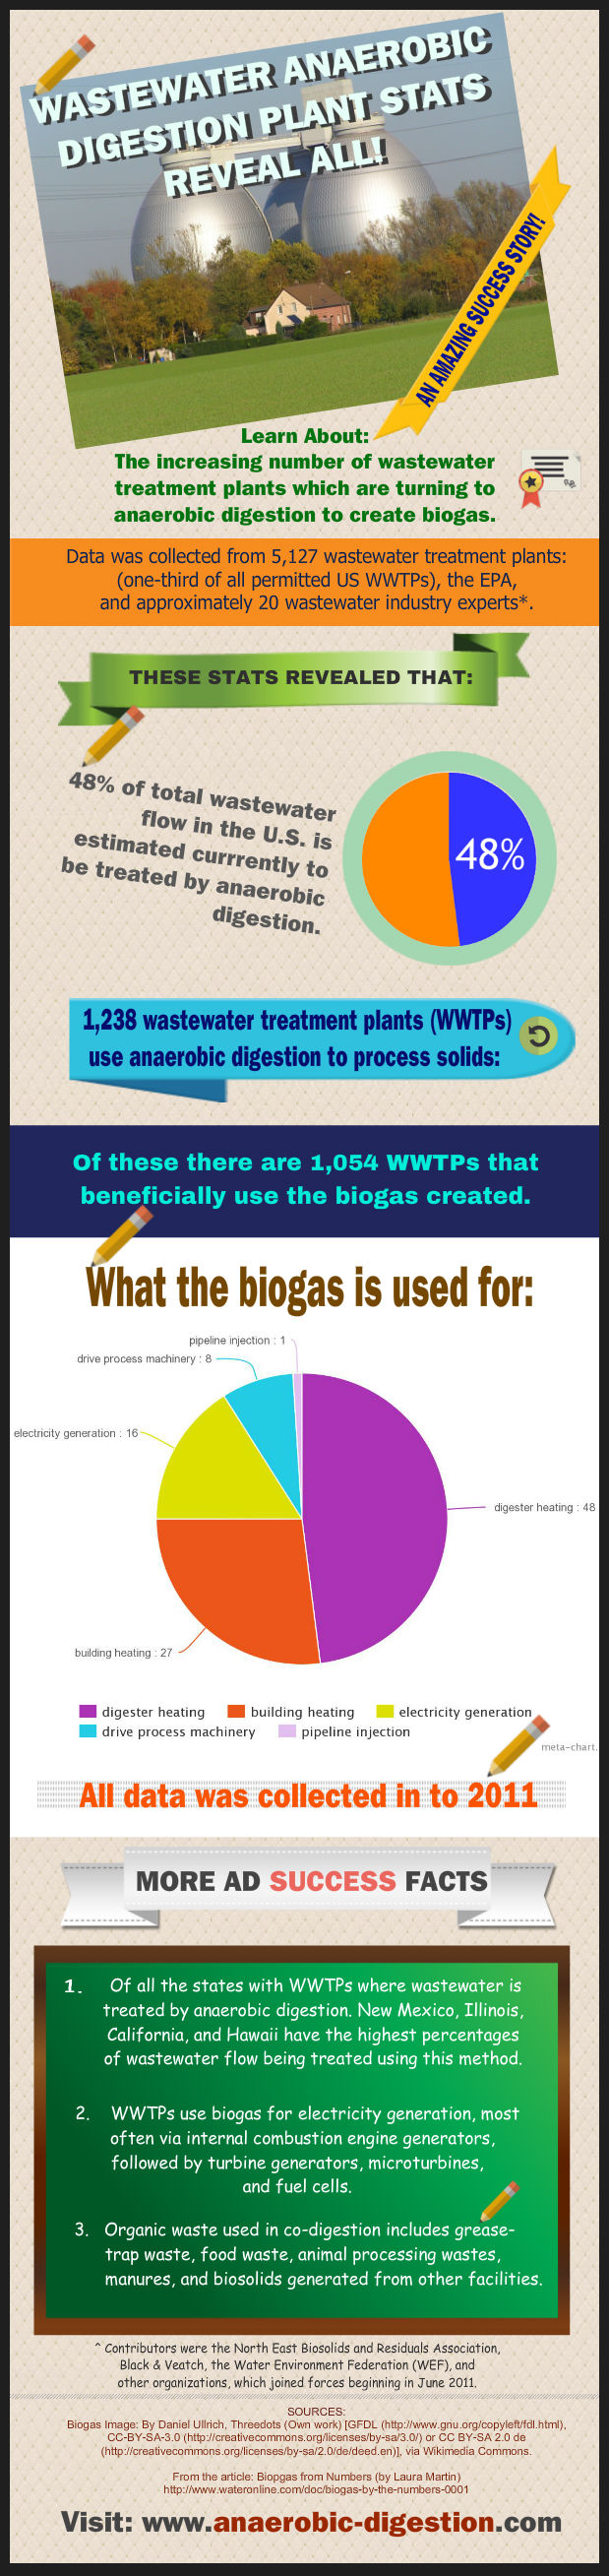 Wastewater anaerobic digestion facts